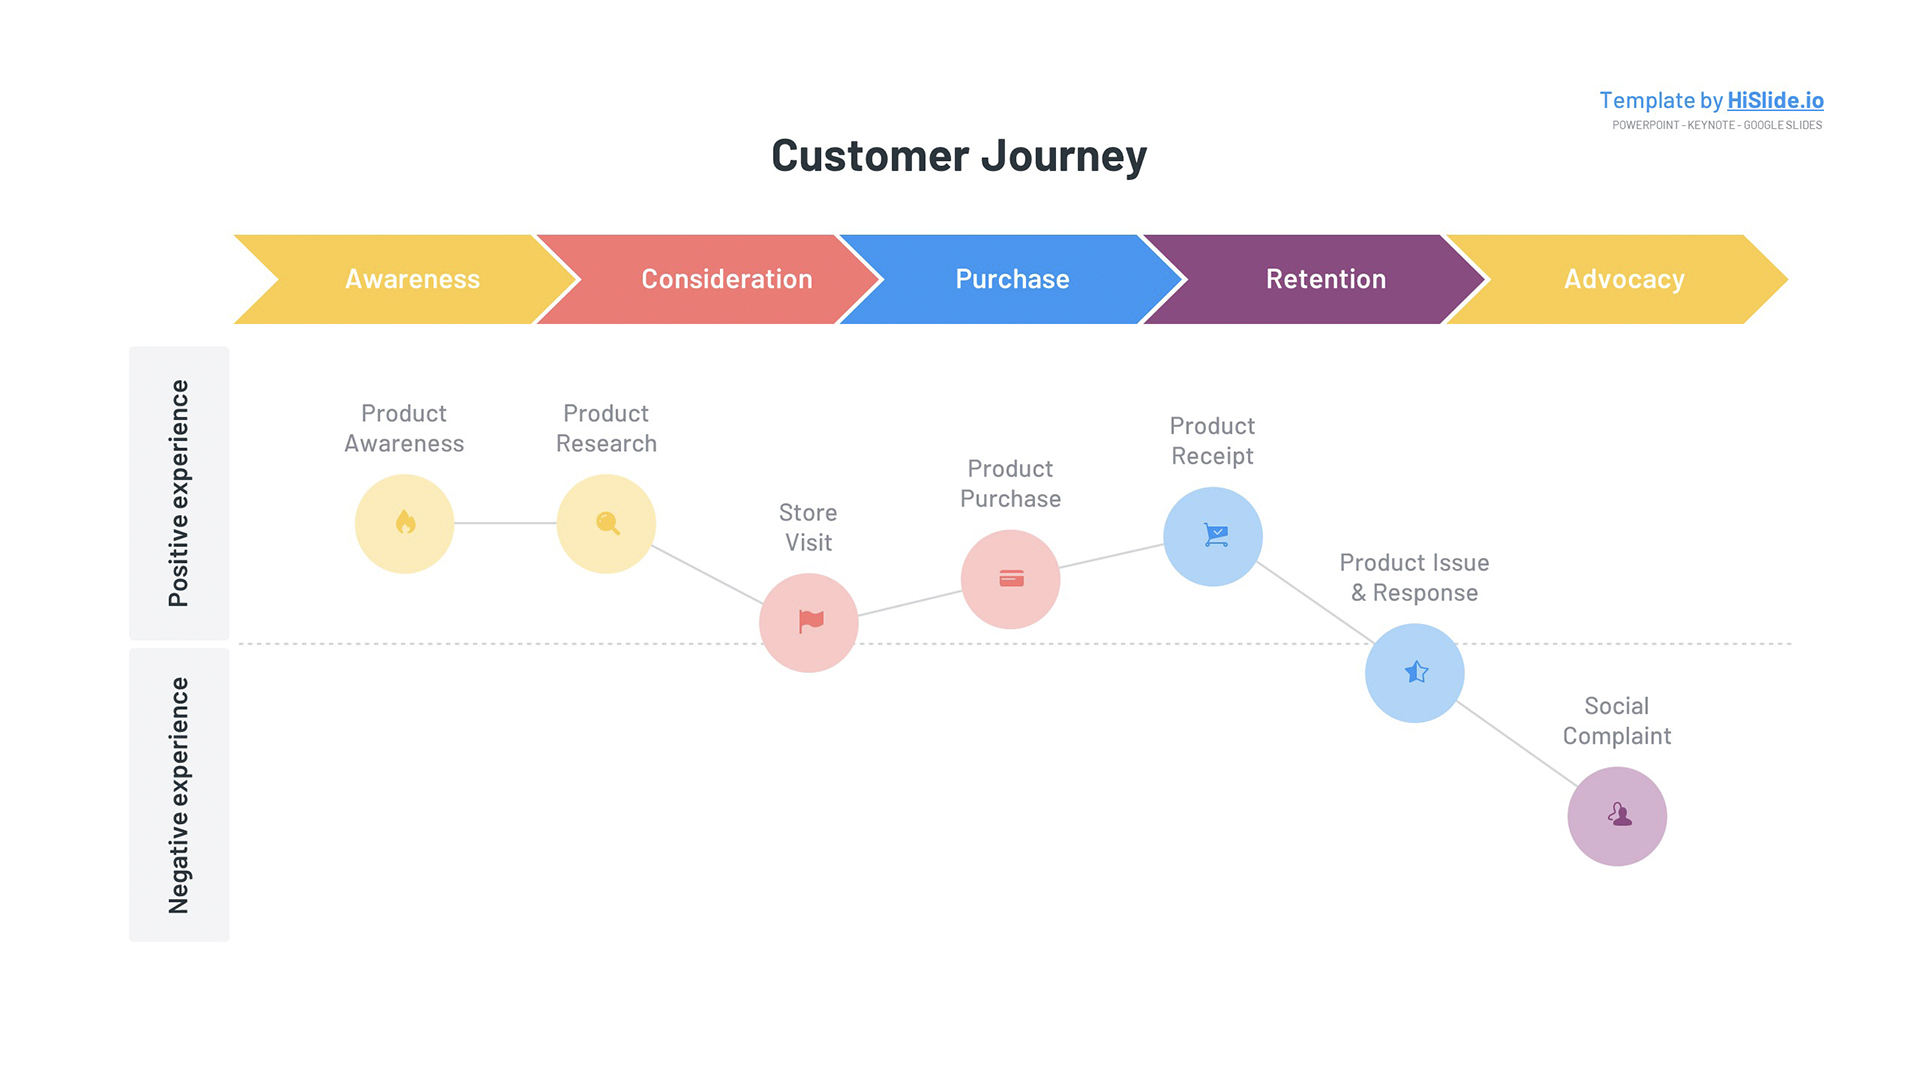 Customer Journey experience map for Powerpoint